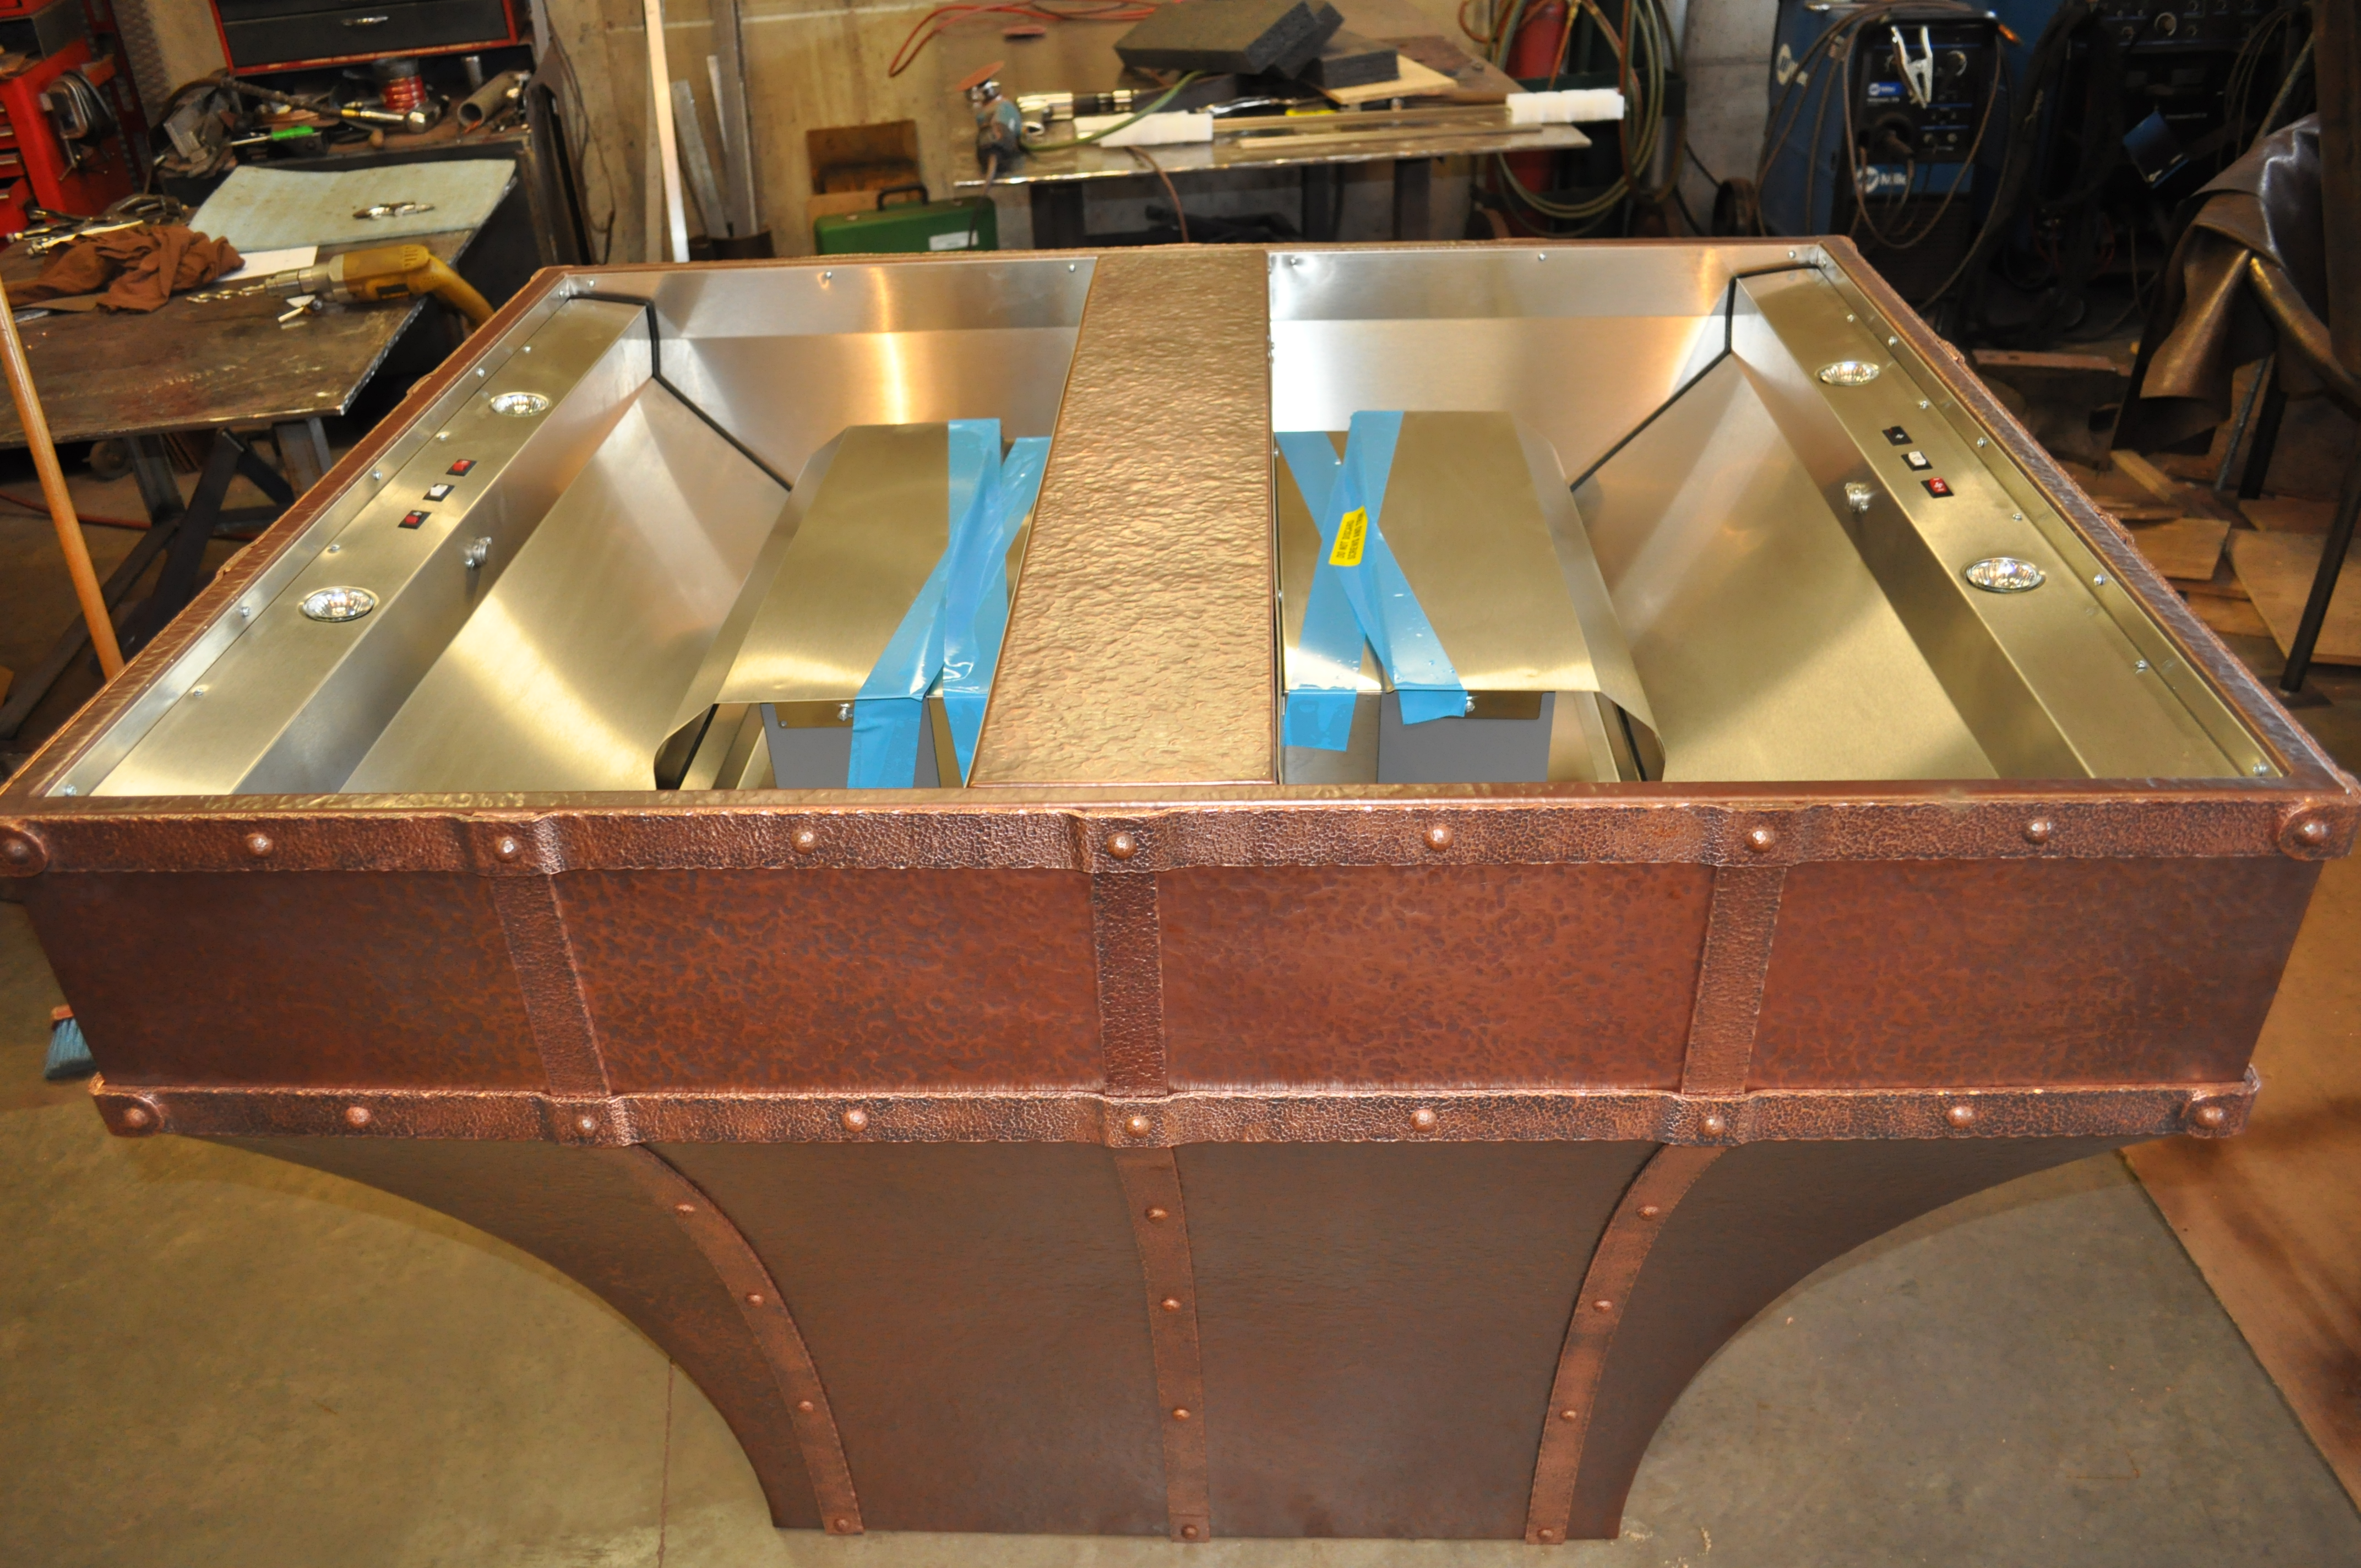 The Texas Rustic Copper Range Hood Hand Crafted